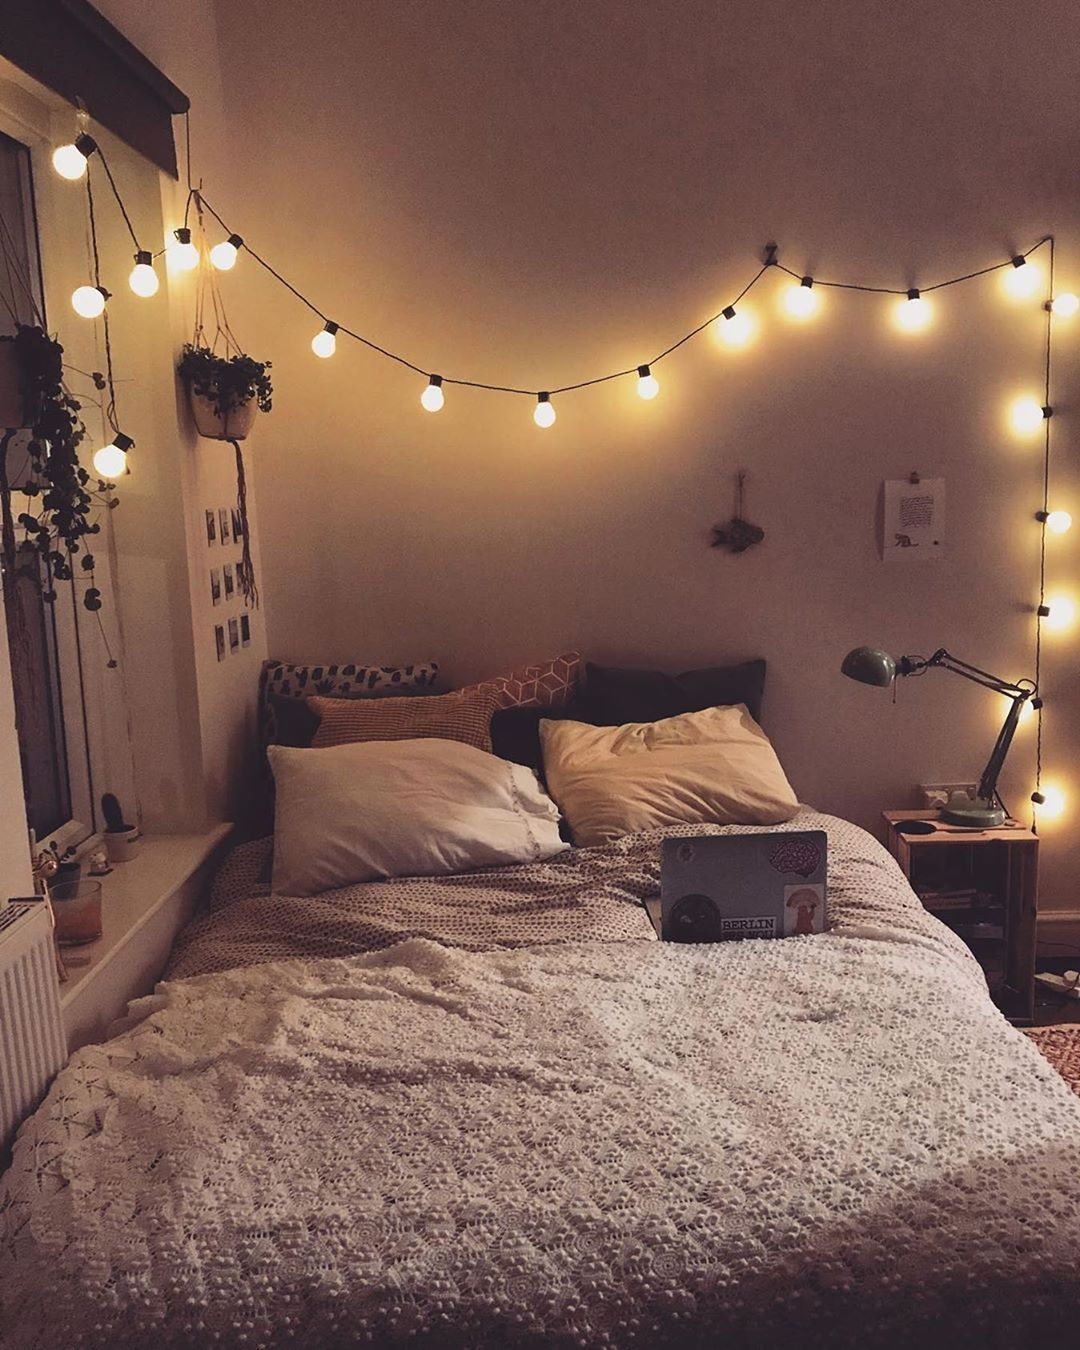 Decor For Bedrooms Find Your Perfect Design In 2020 Cozy Room Decor Aesthetic Bedroom Relaxing Bedroom